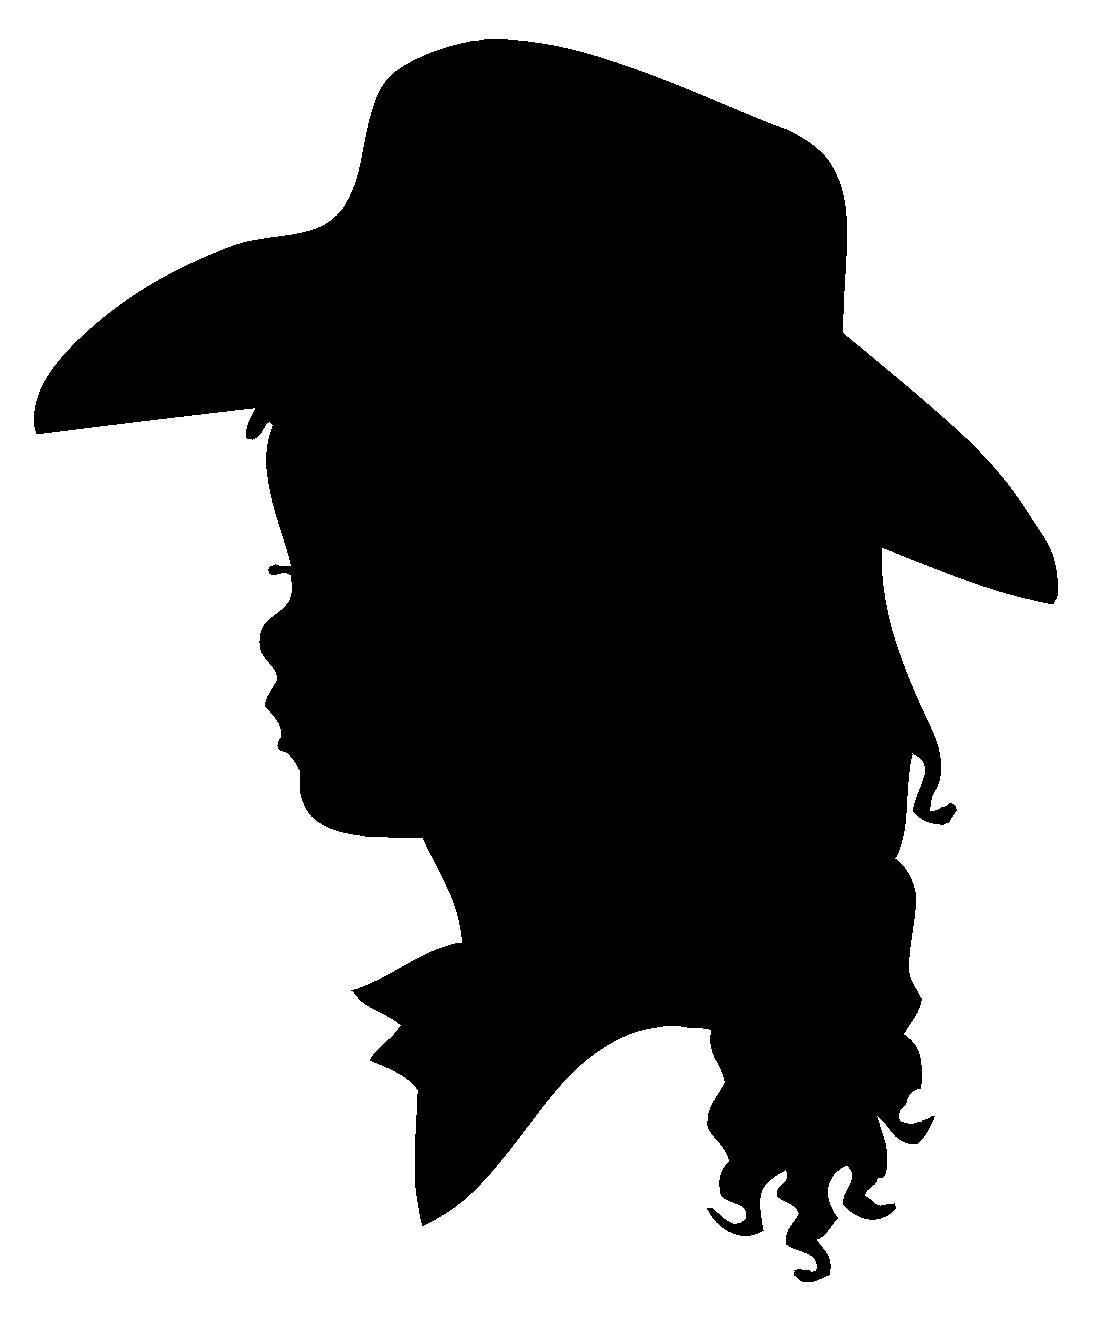 Cowgirl clipart silhouette Cowboy by ahintofchicboutique  ahintofchicboutique